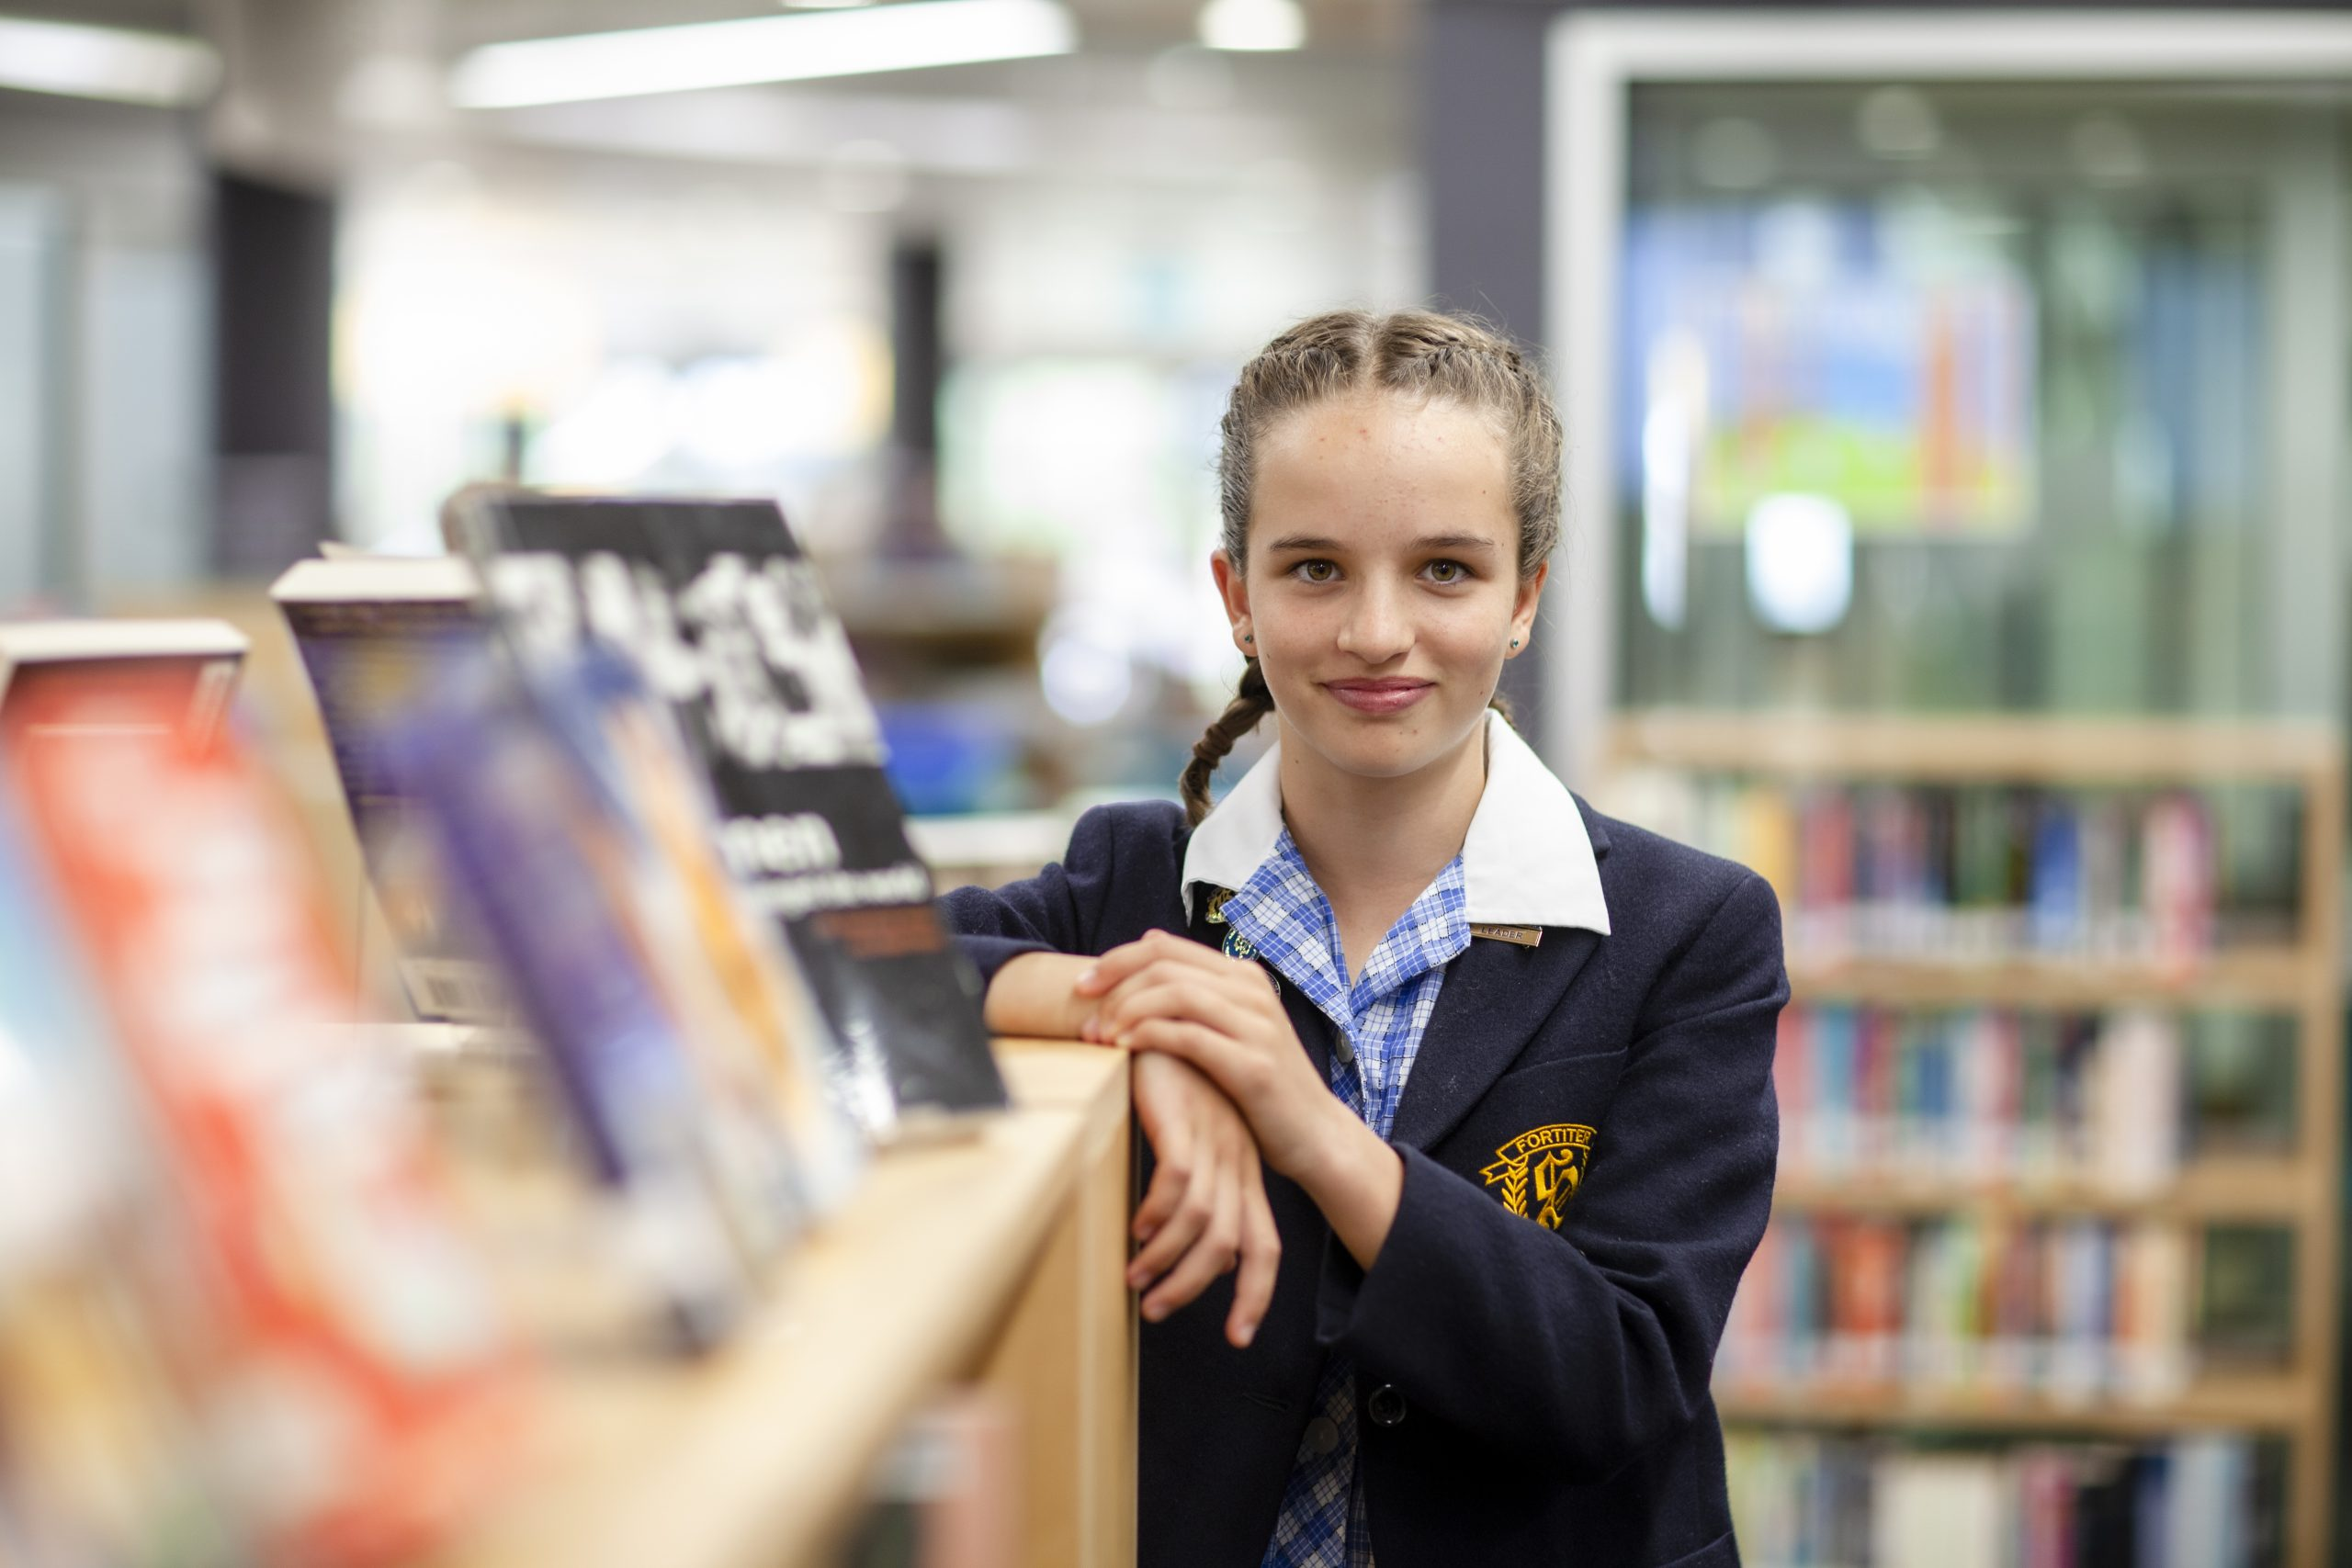 School tour library student